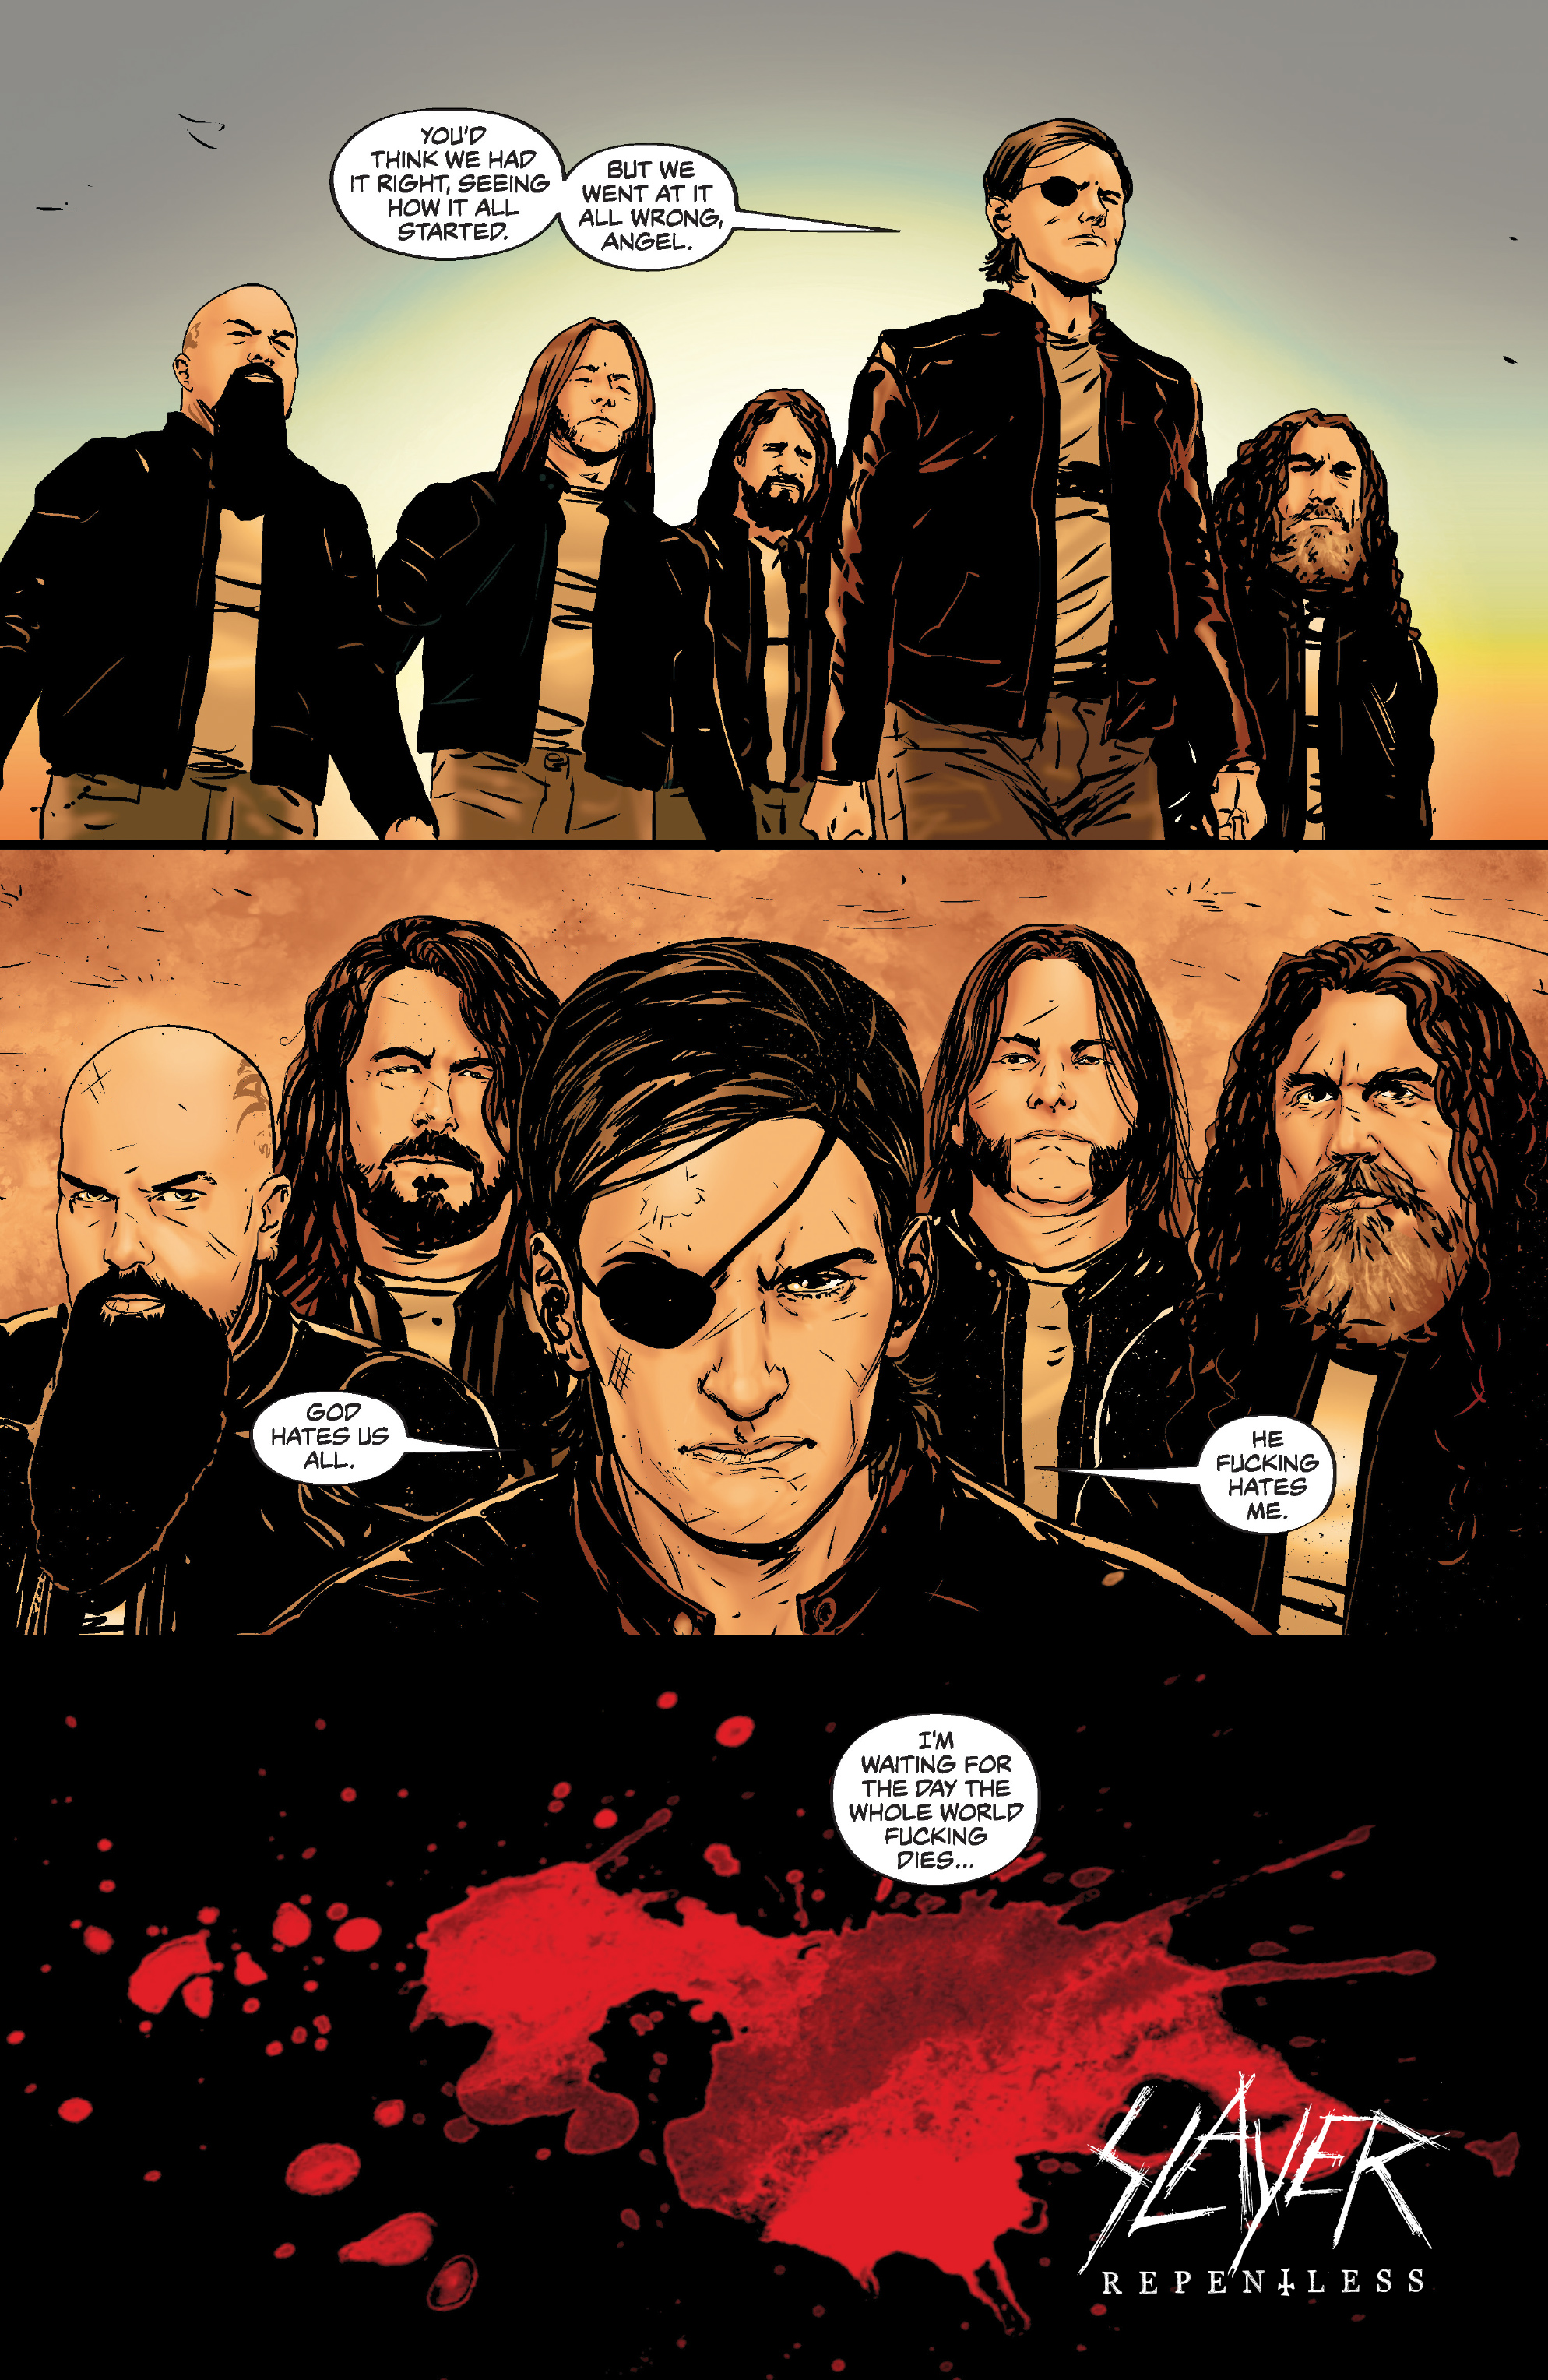 Read online Slayer: Repentless comic -  Issue #3 - 24